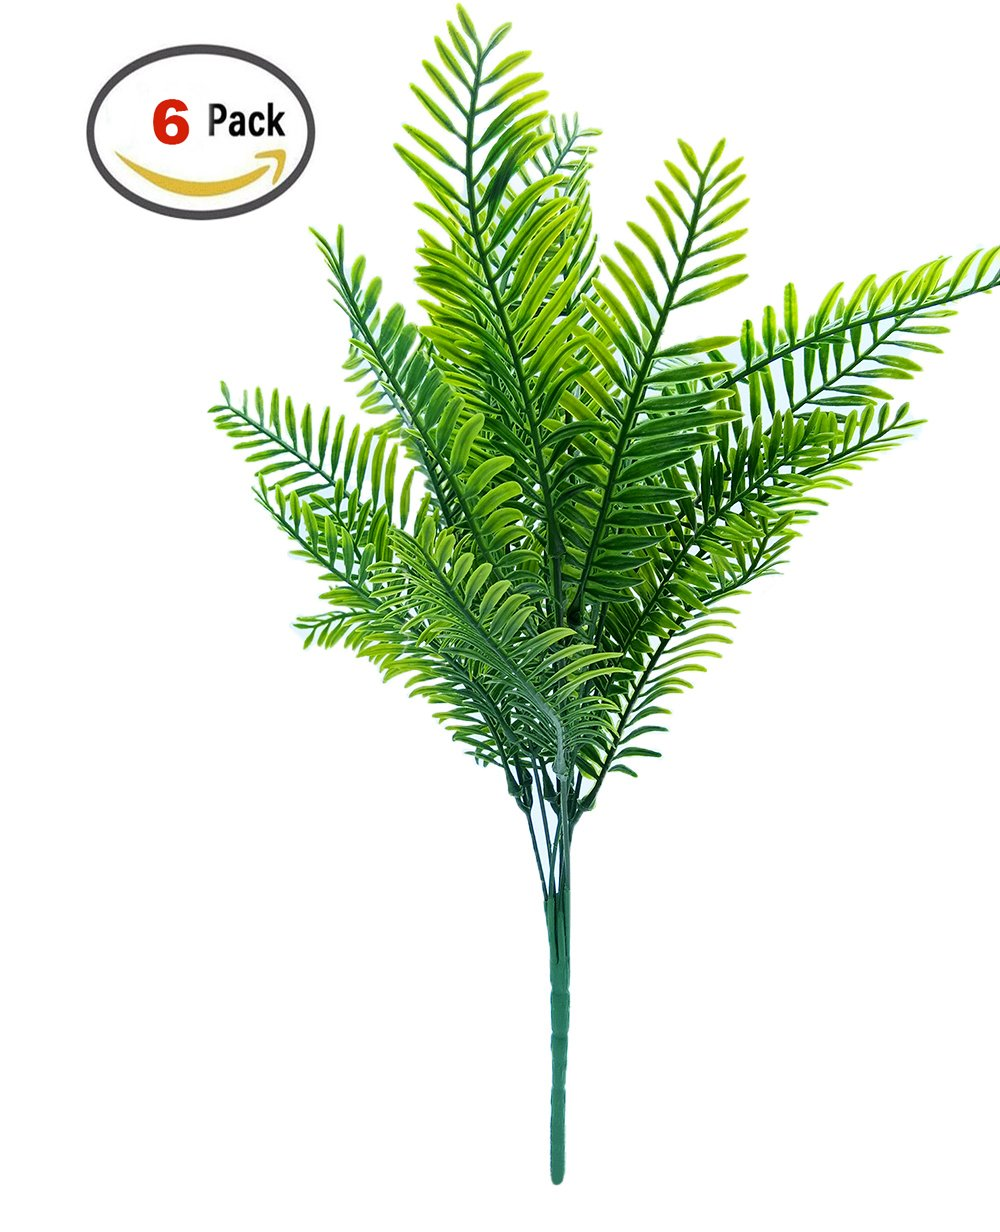 Artificial Shrubs / SFTlite 6 Bundles Boston Fern Artificial Plants - Fake Plastic Shrubs Leaves Simulation Greenery Bushes Floral Arrangement Bouquet Filler - Ideal for Indoor Outside Home Garden Office Table Verandah Decoration Party Wedding Showing